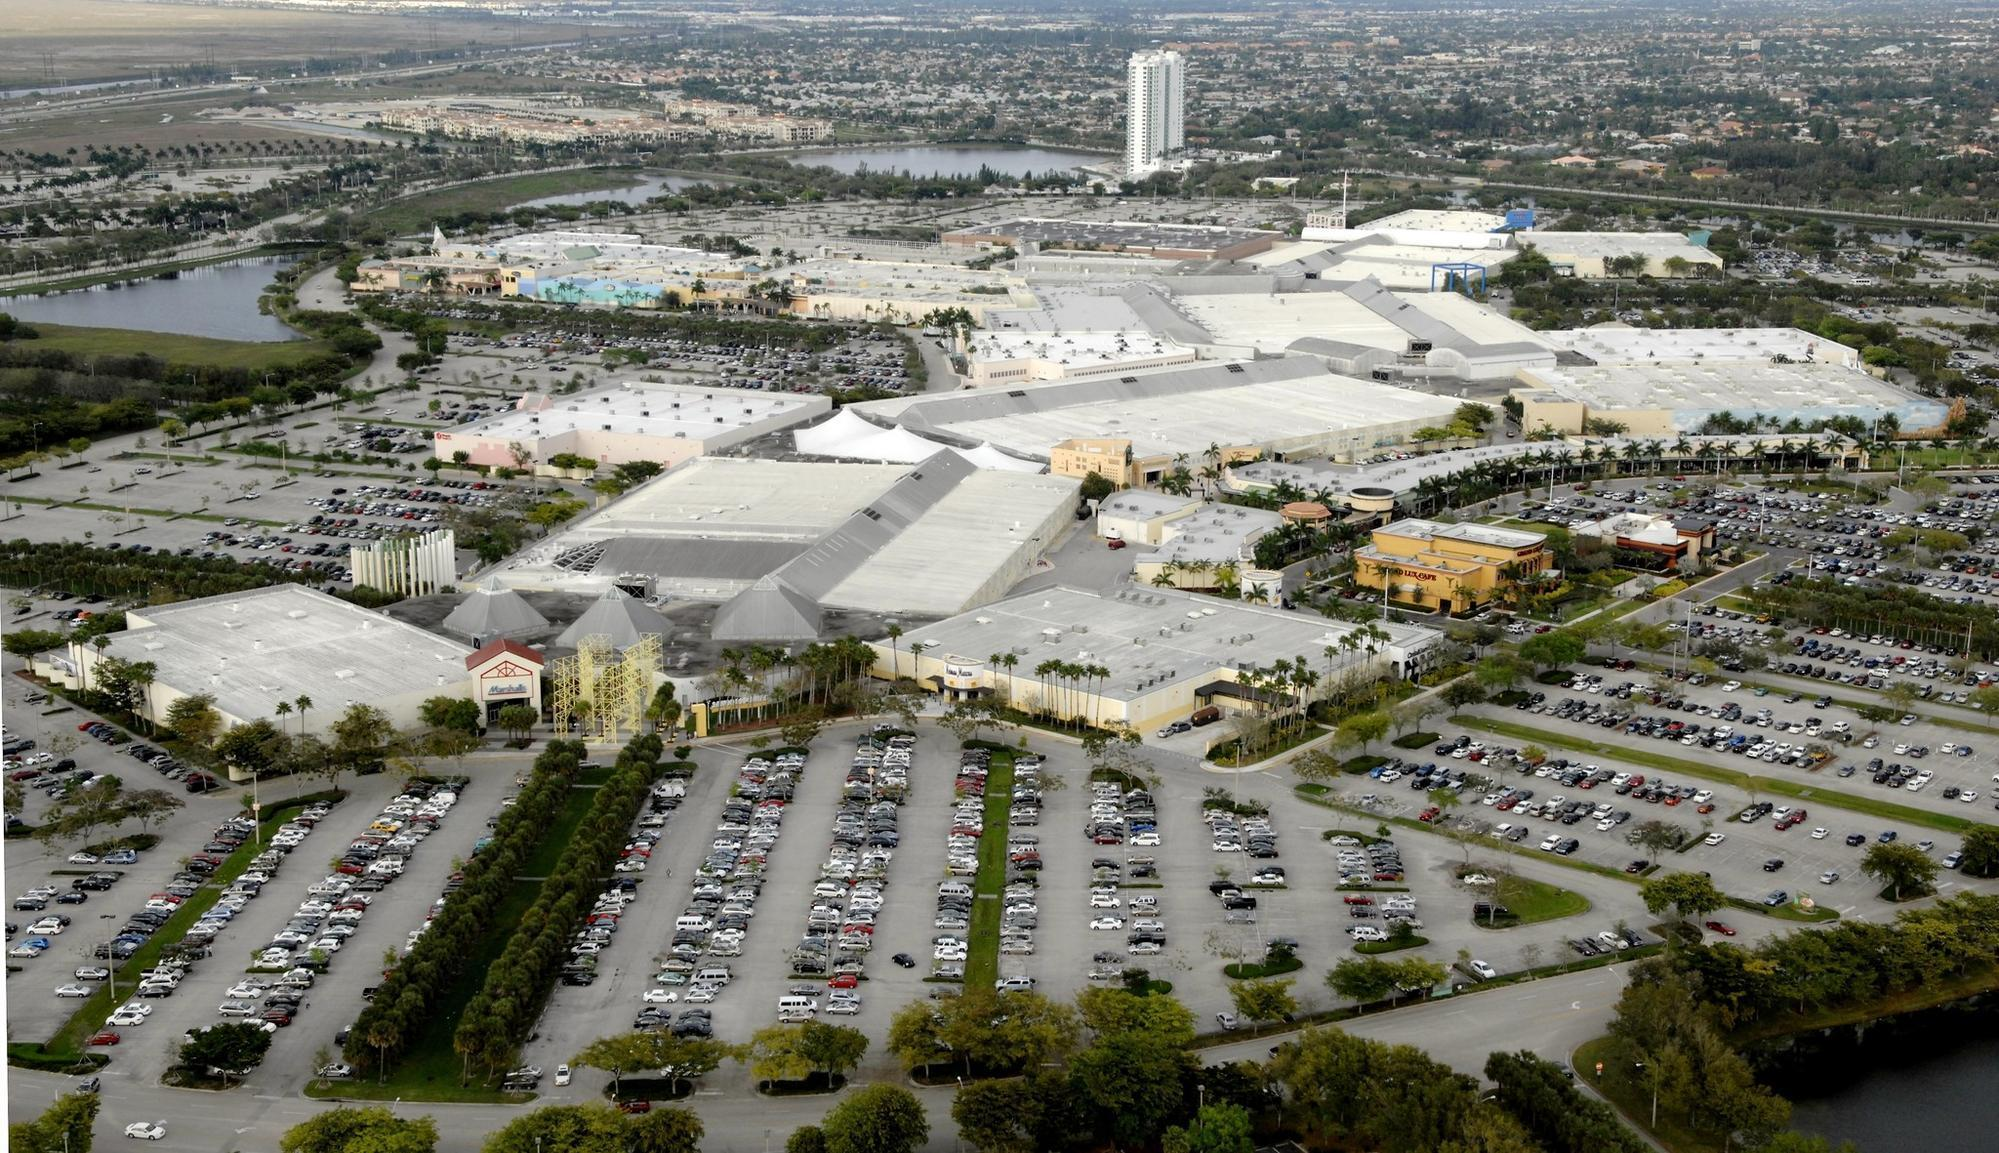 Fireworks at Sawgrass Mills mall likely were distraction ...